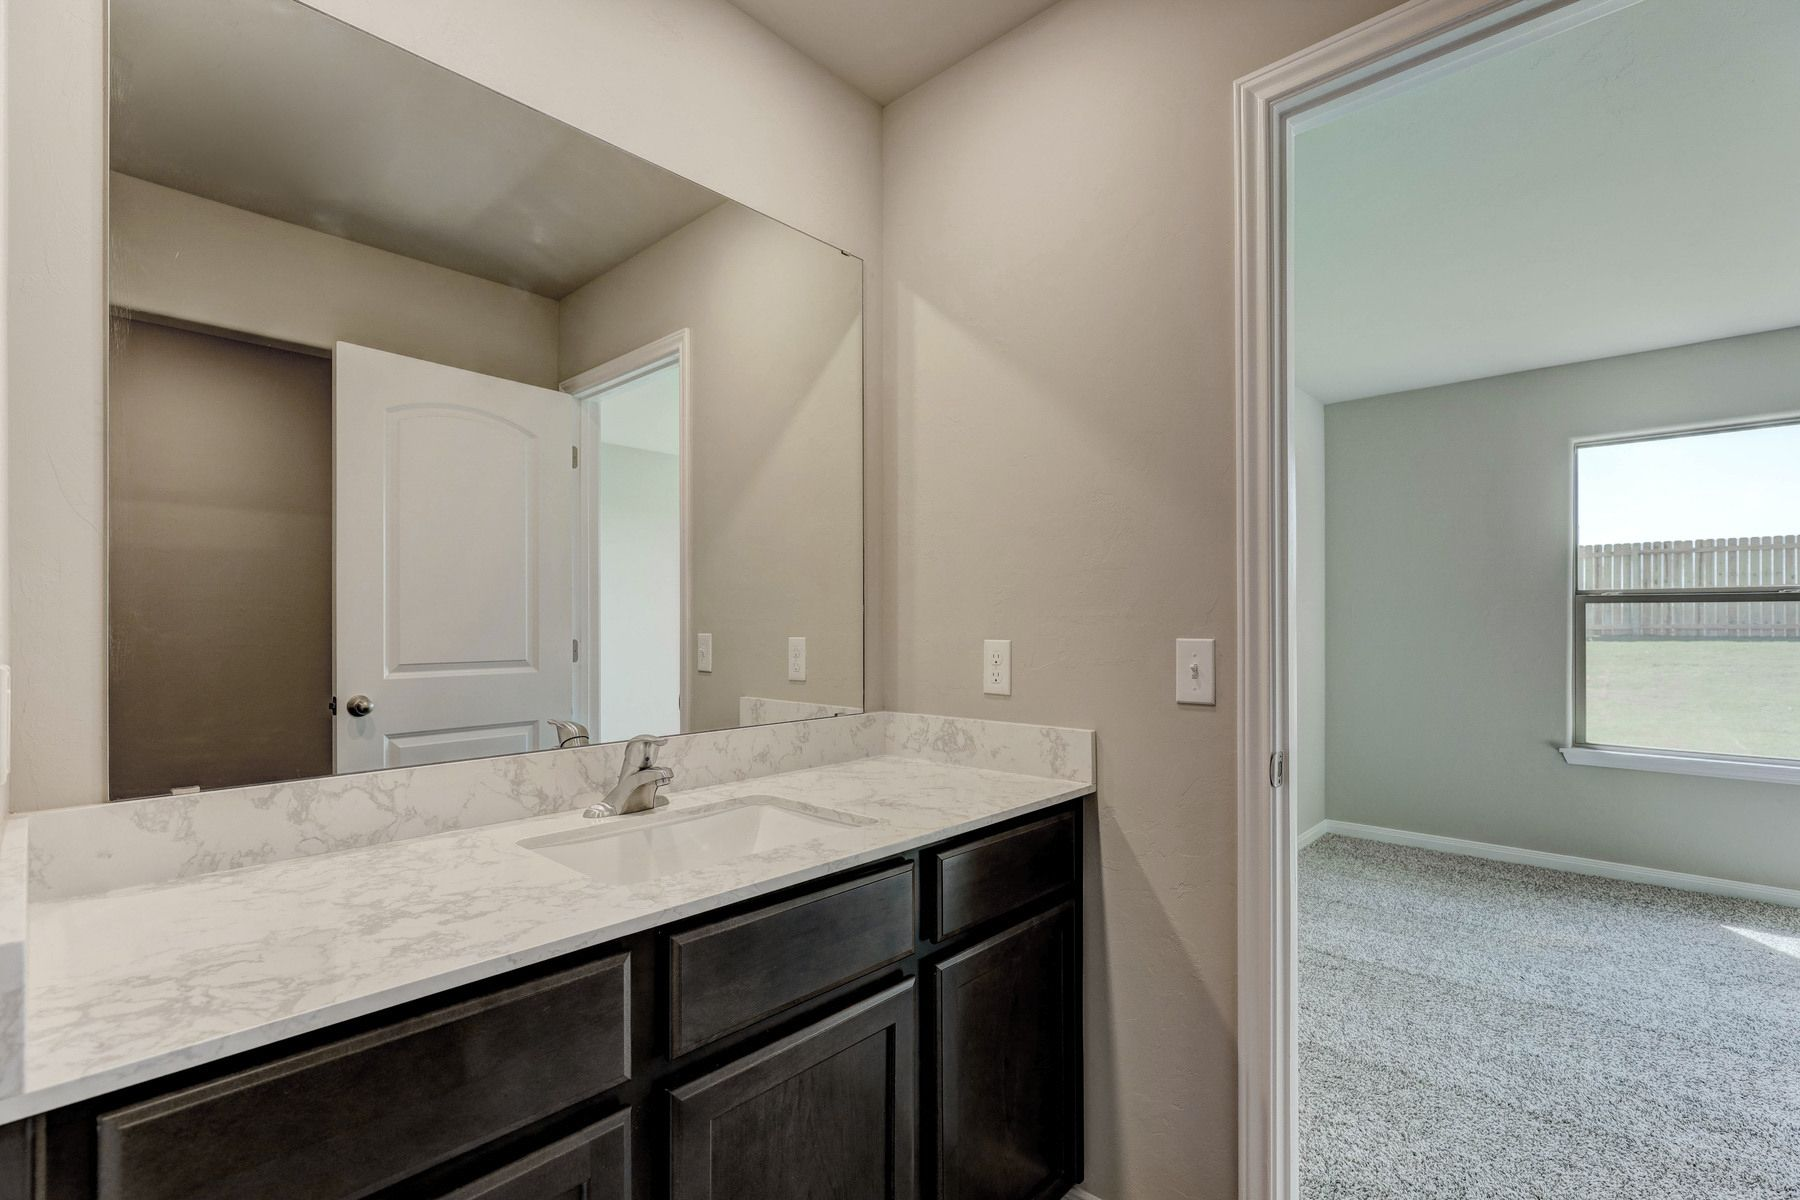 Bathroom featured in the Jaxton By LGI Homes in Oklahoma City, OK